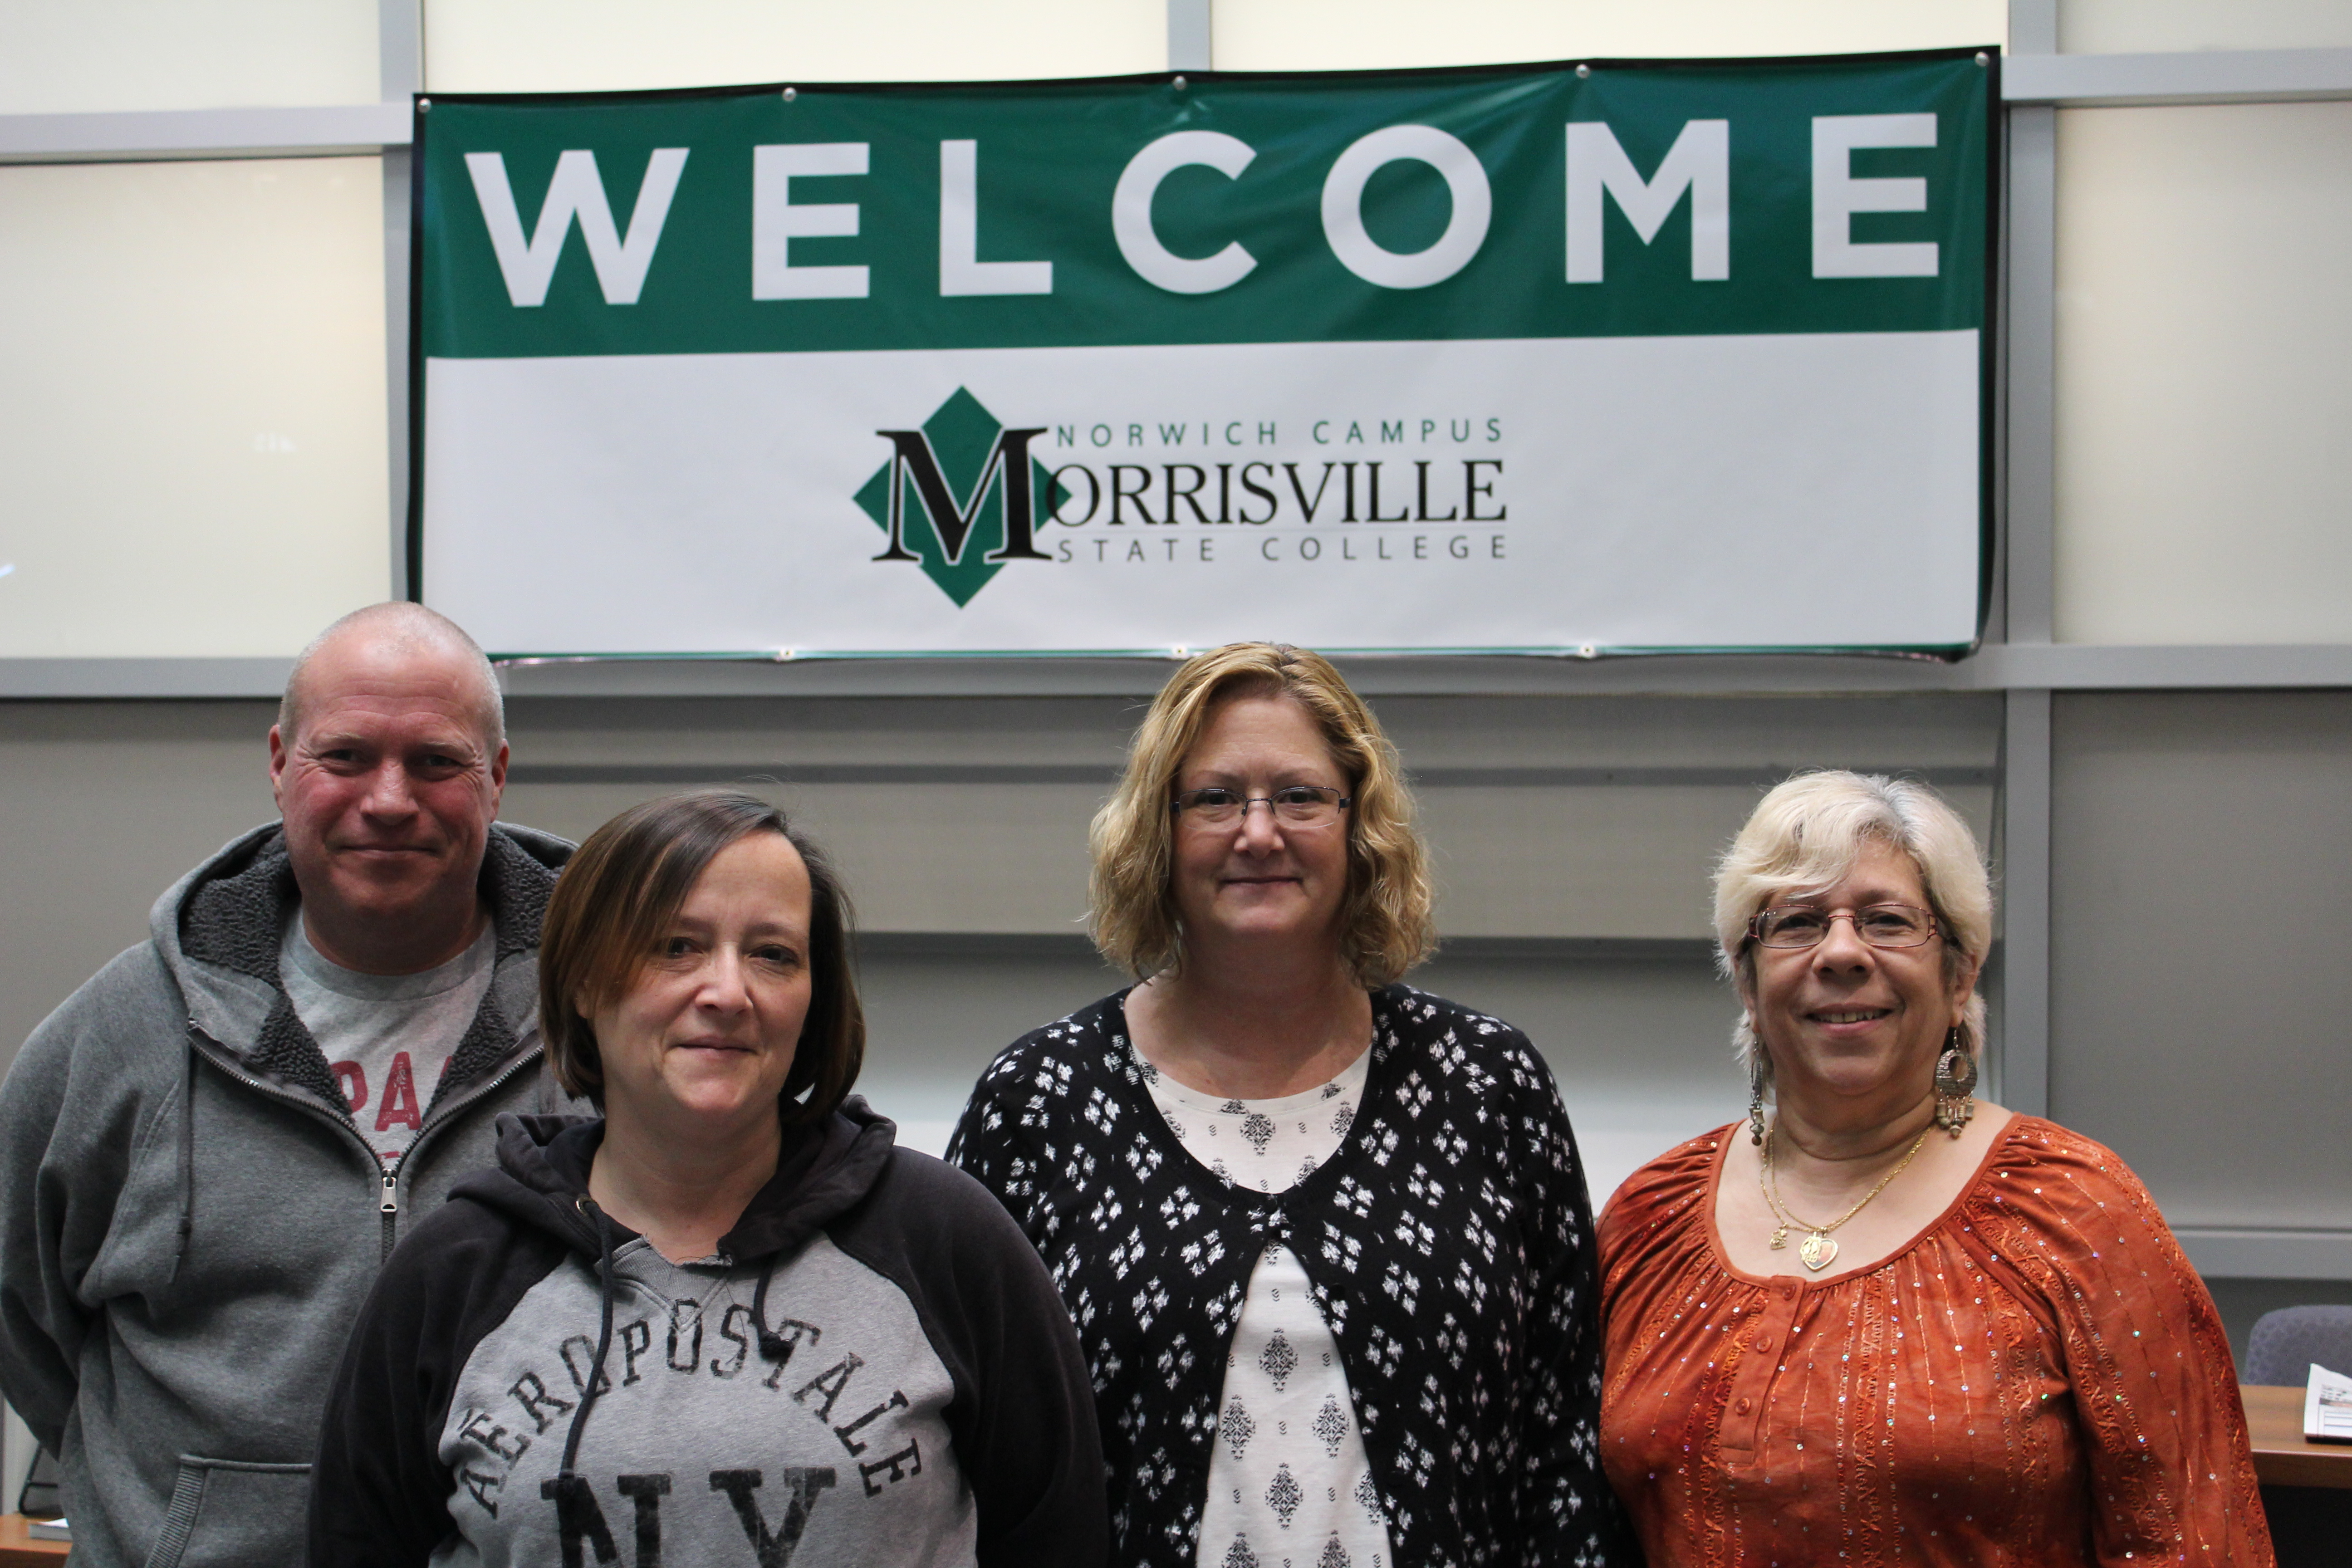 From left: Eric Lyons, AngelTowndrow, Christine Barta-Gallagher, Doreen Williams